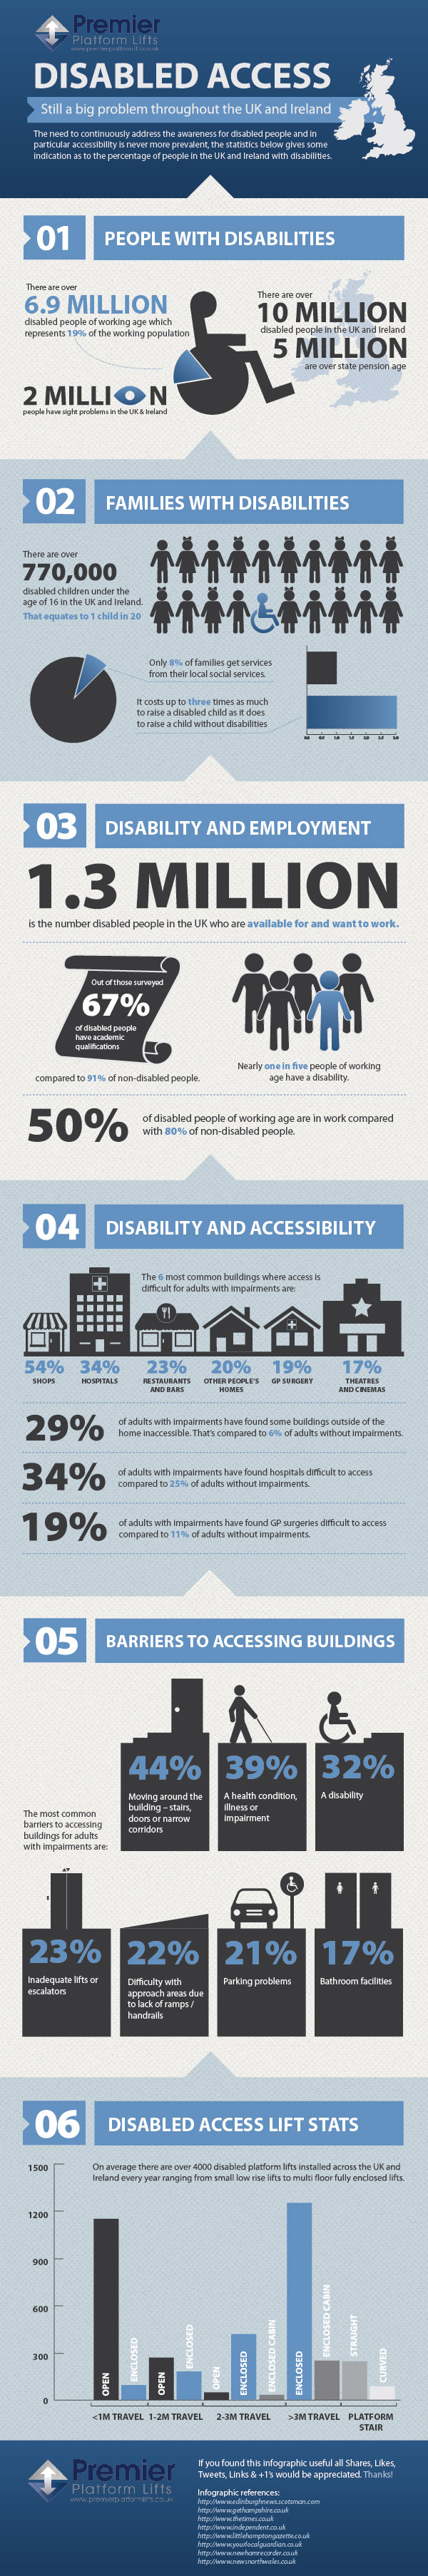 disability-infographic